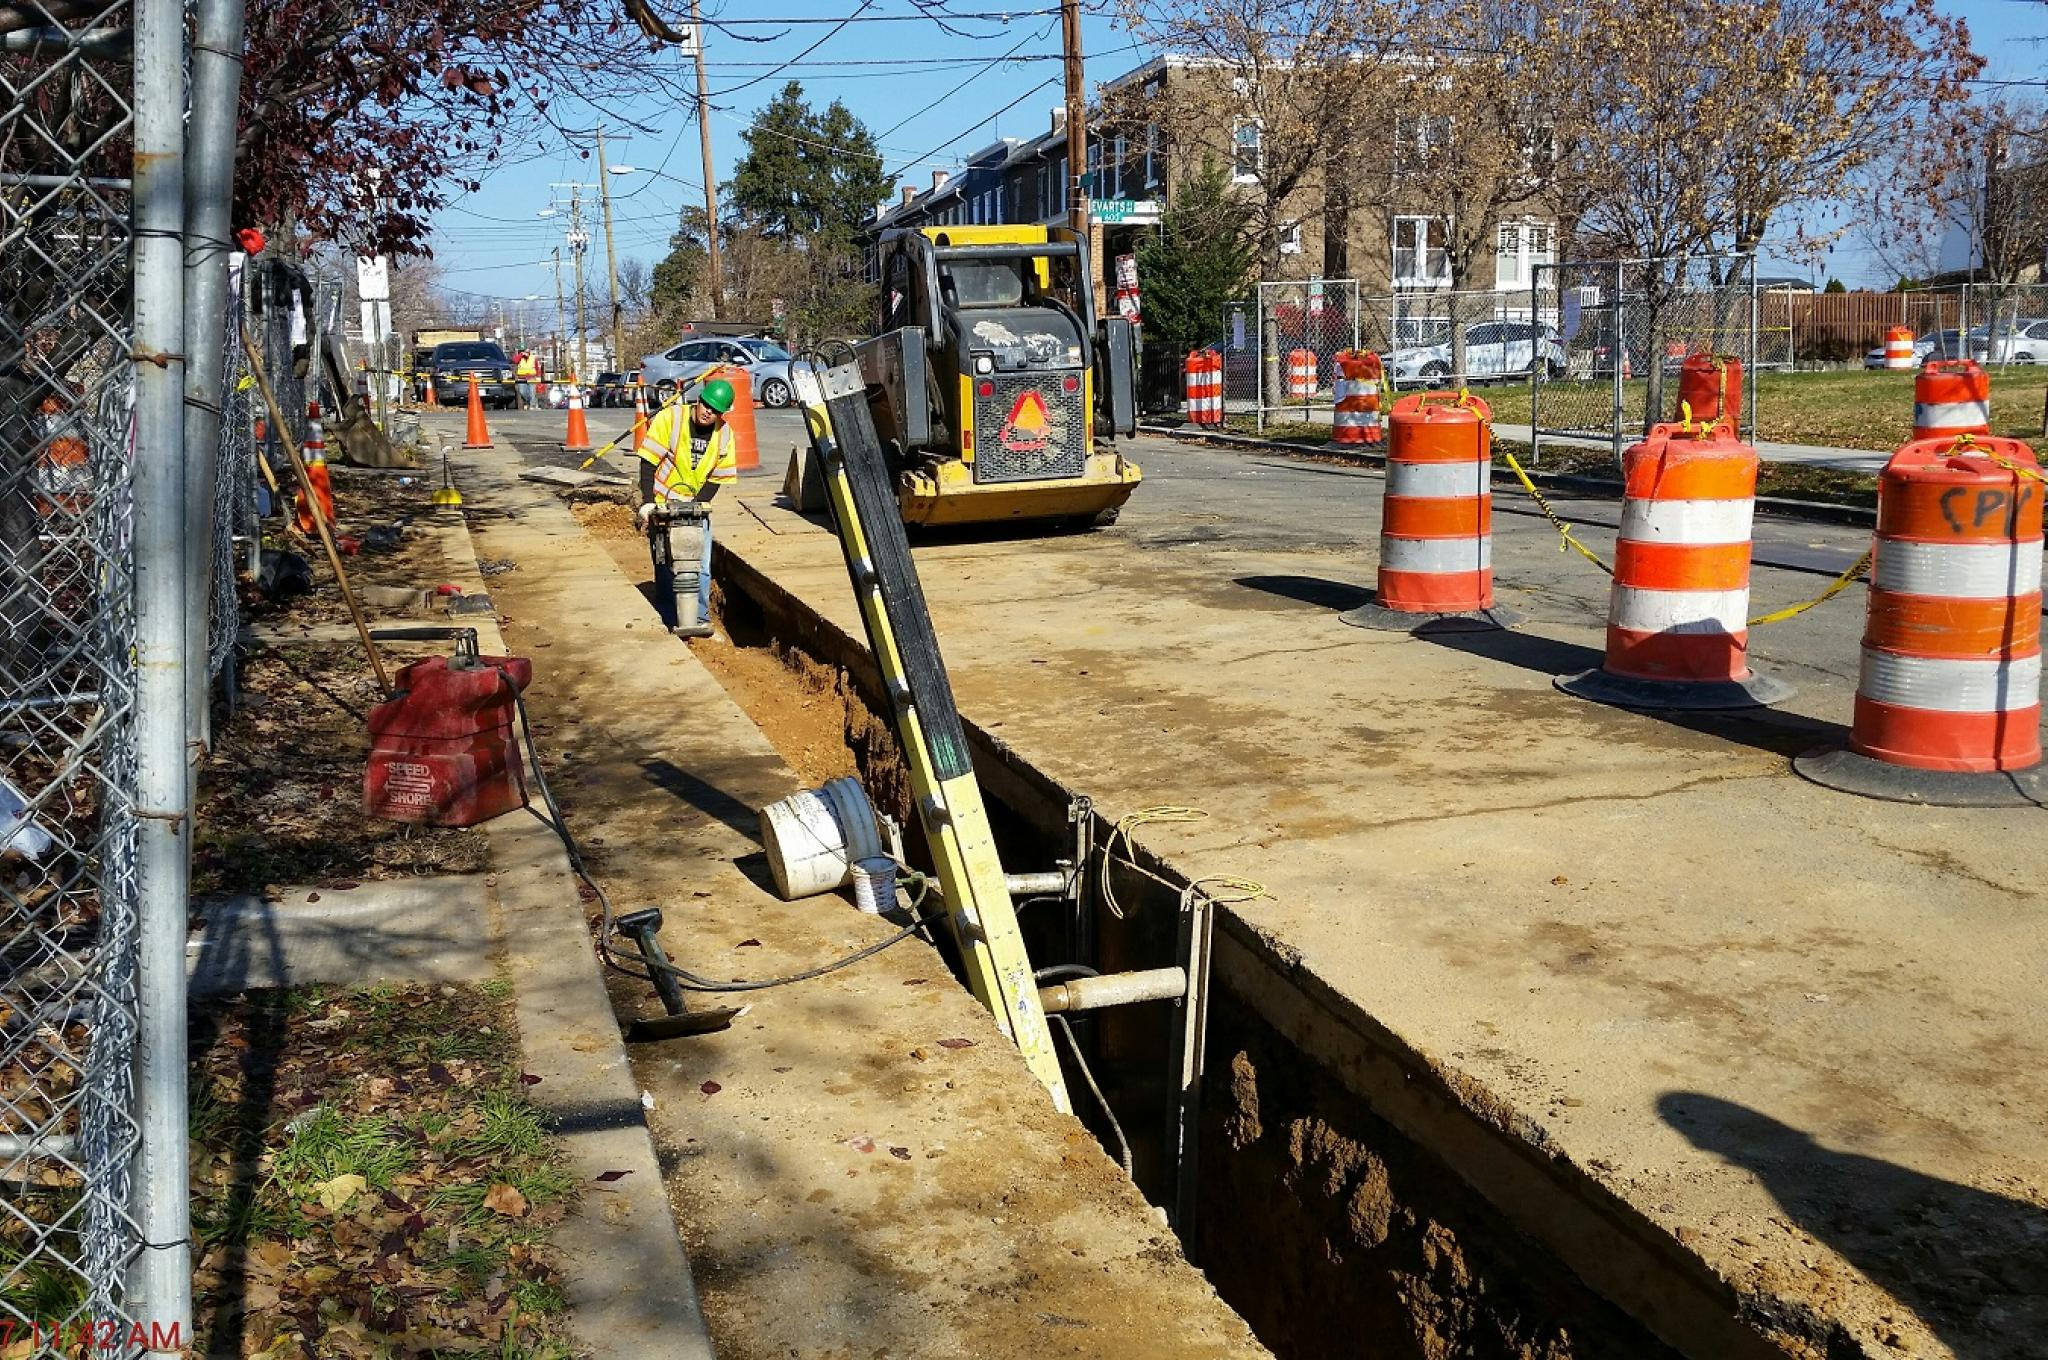 Backfilling between Sta.1+59 - Sta. 0+79 on 6th St NE_Dec 1